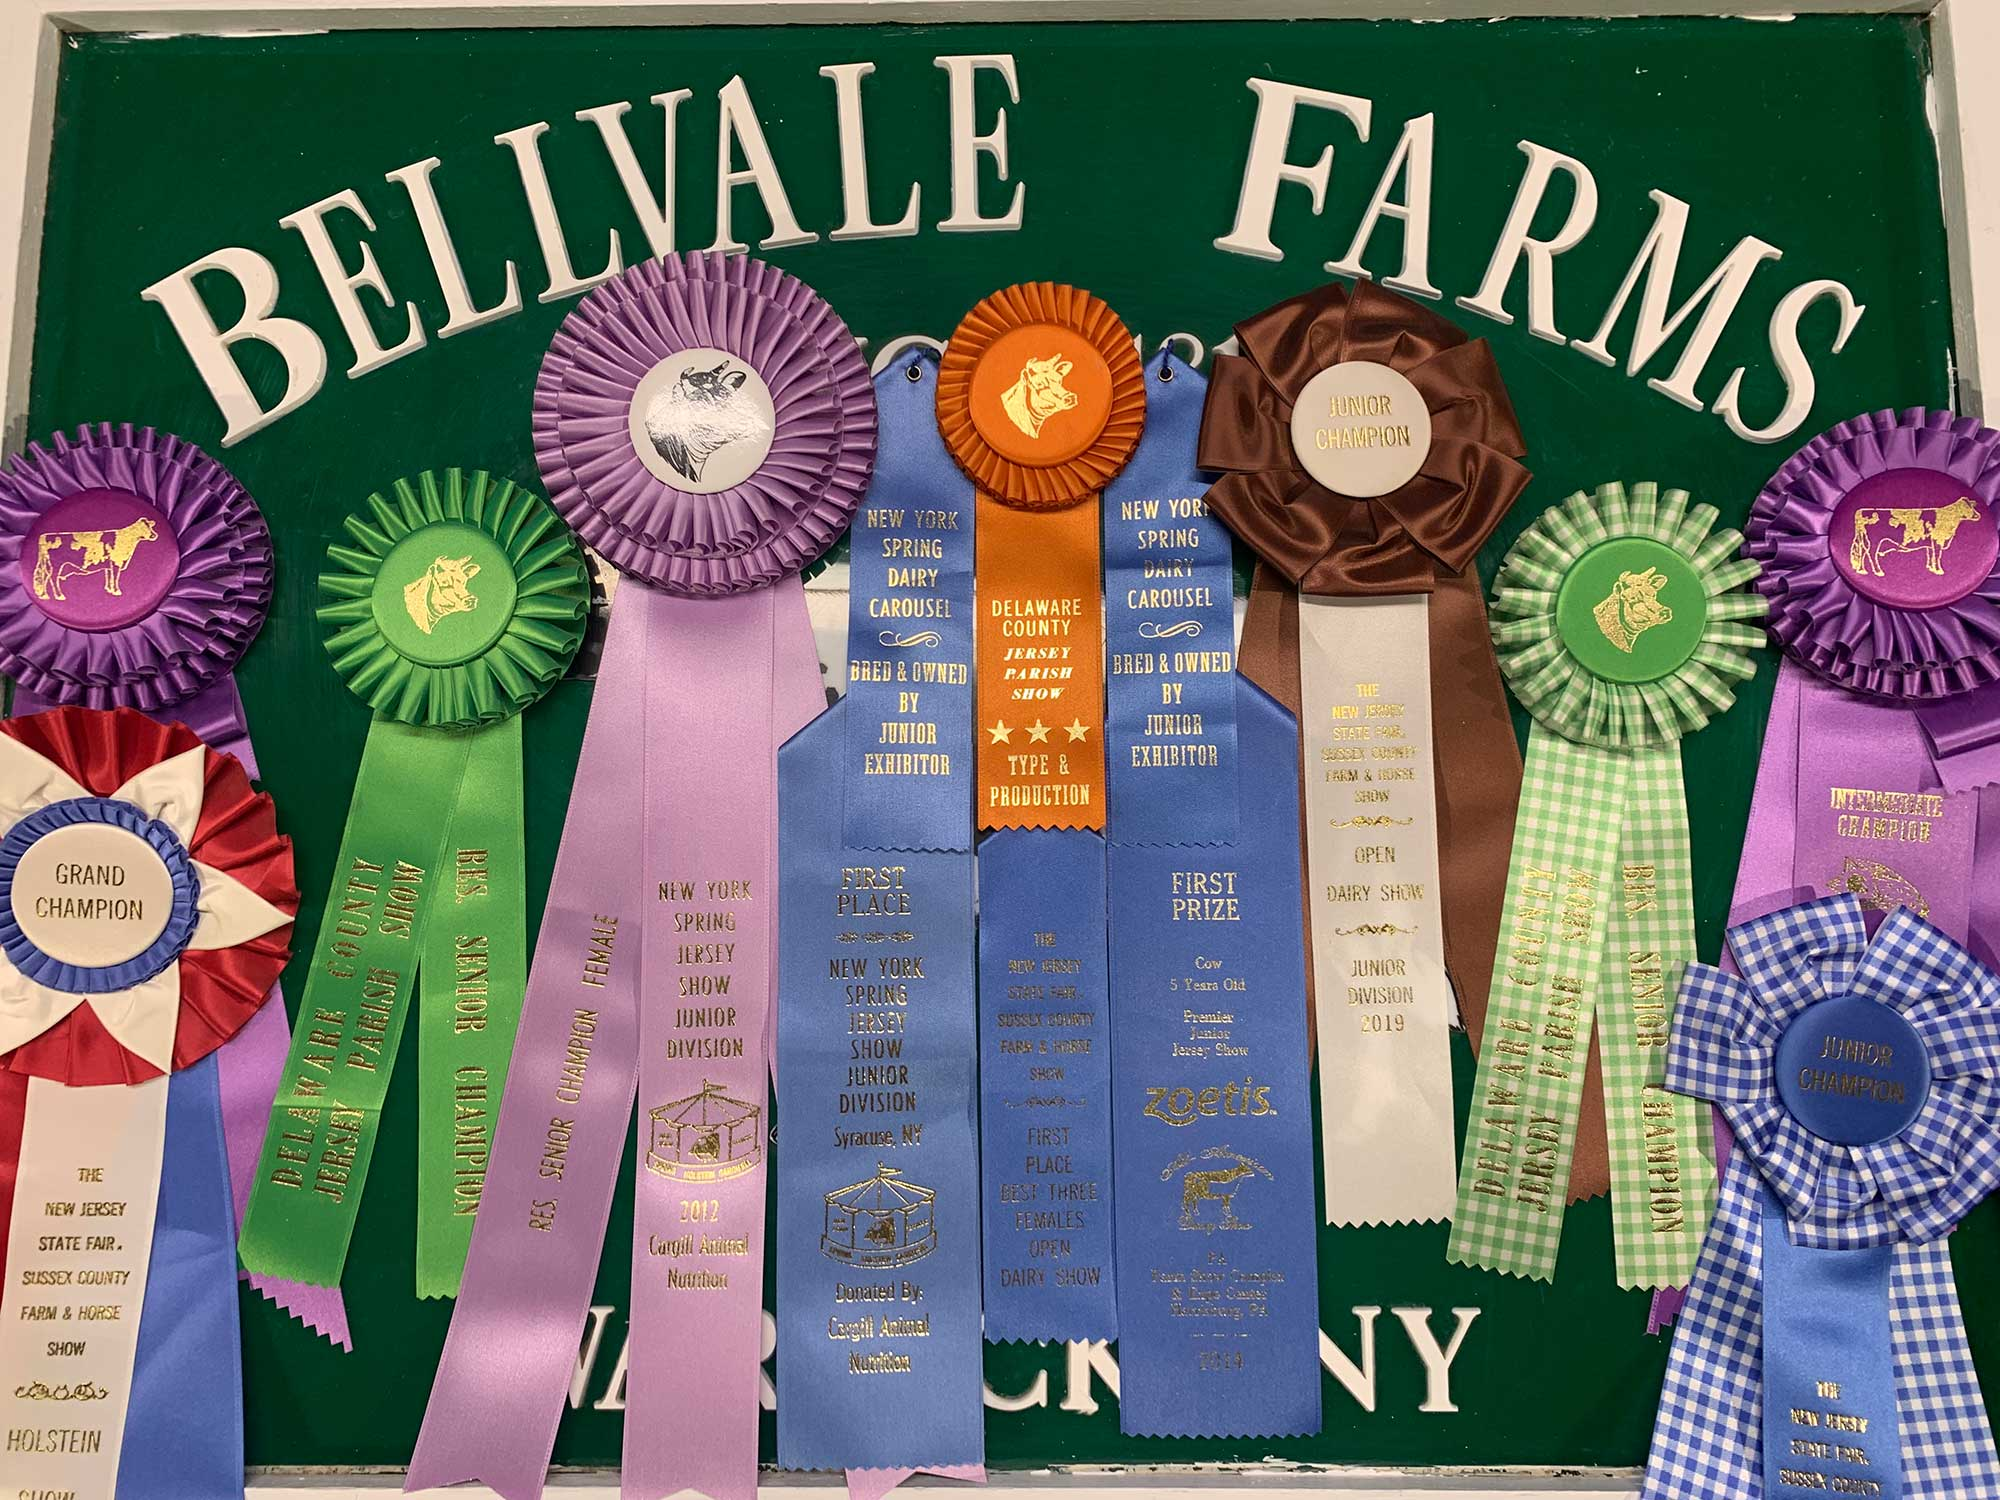 Bellvale Farms Jersey Cows